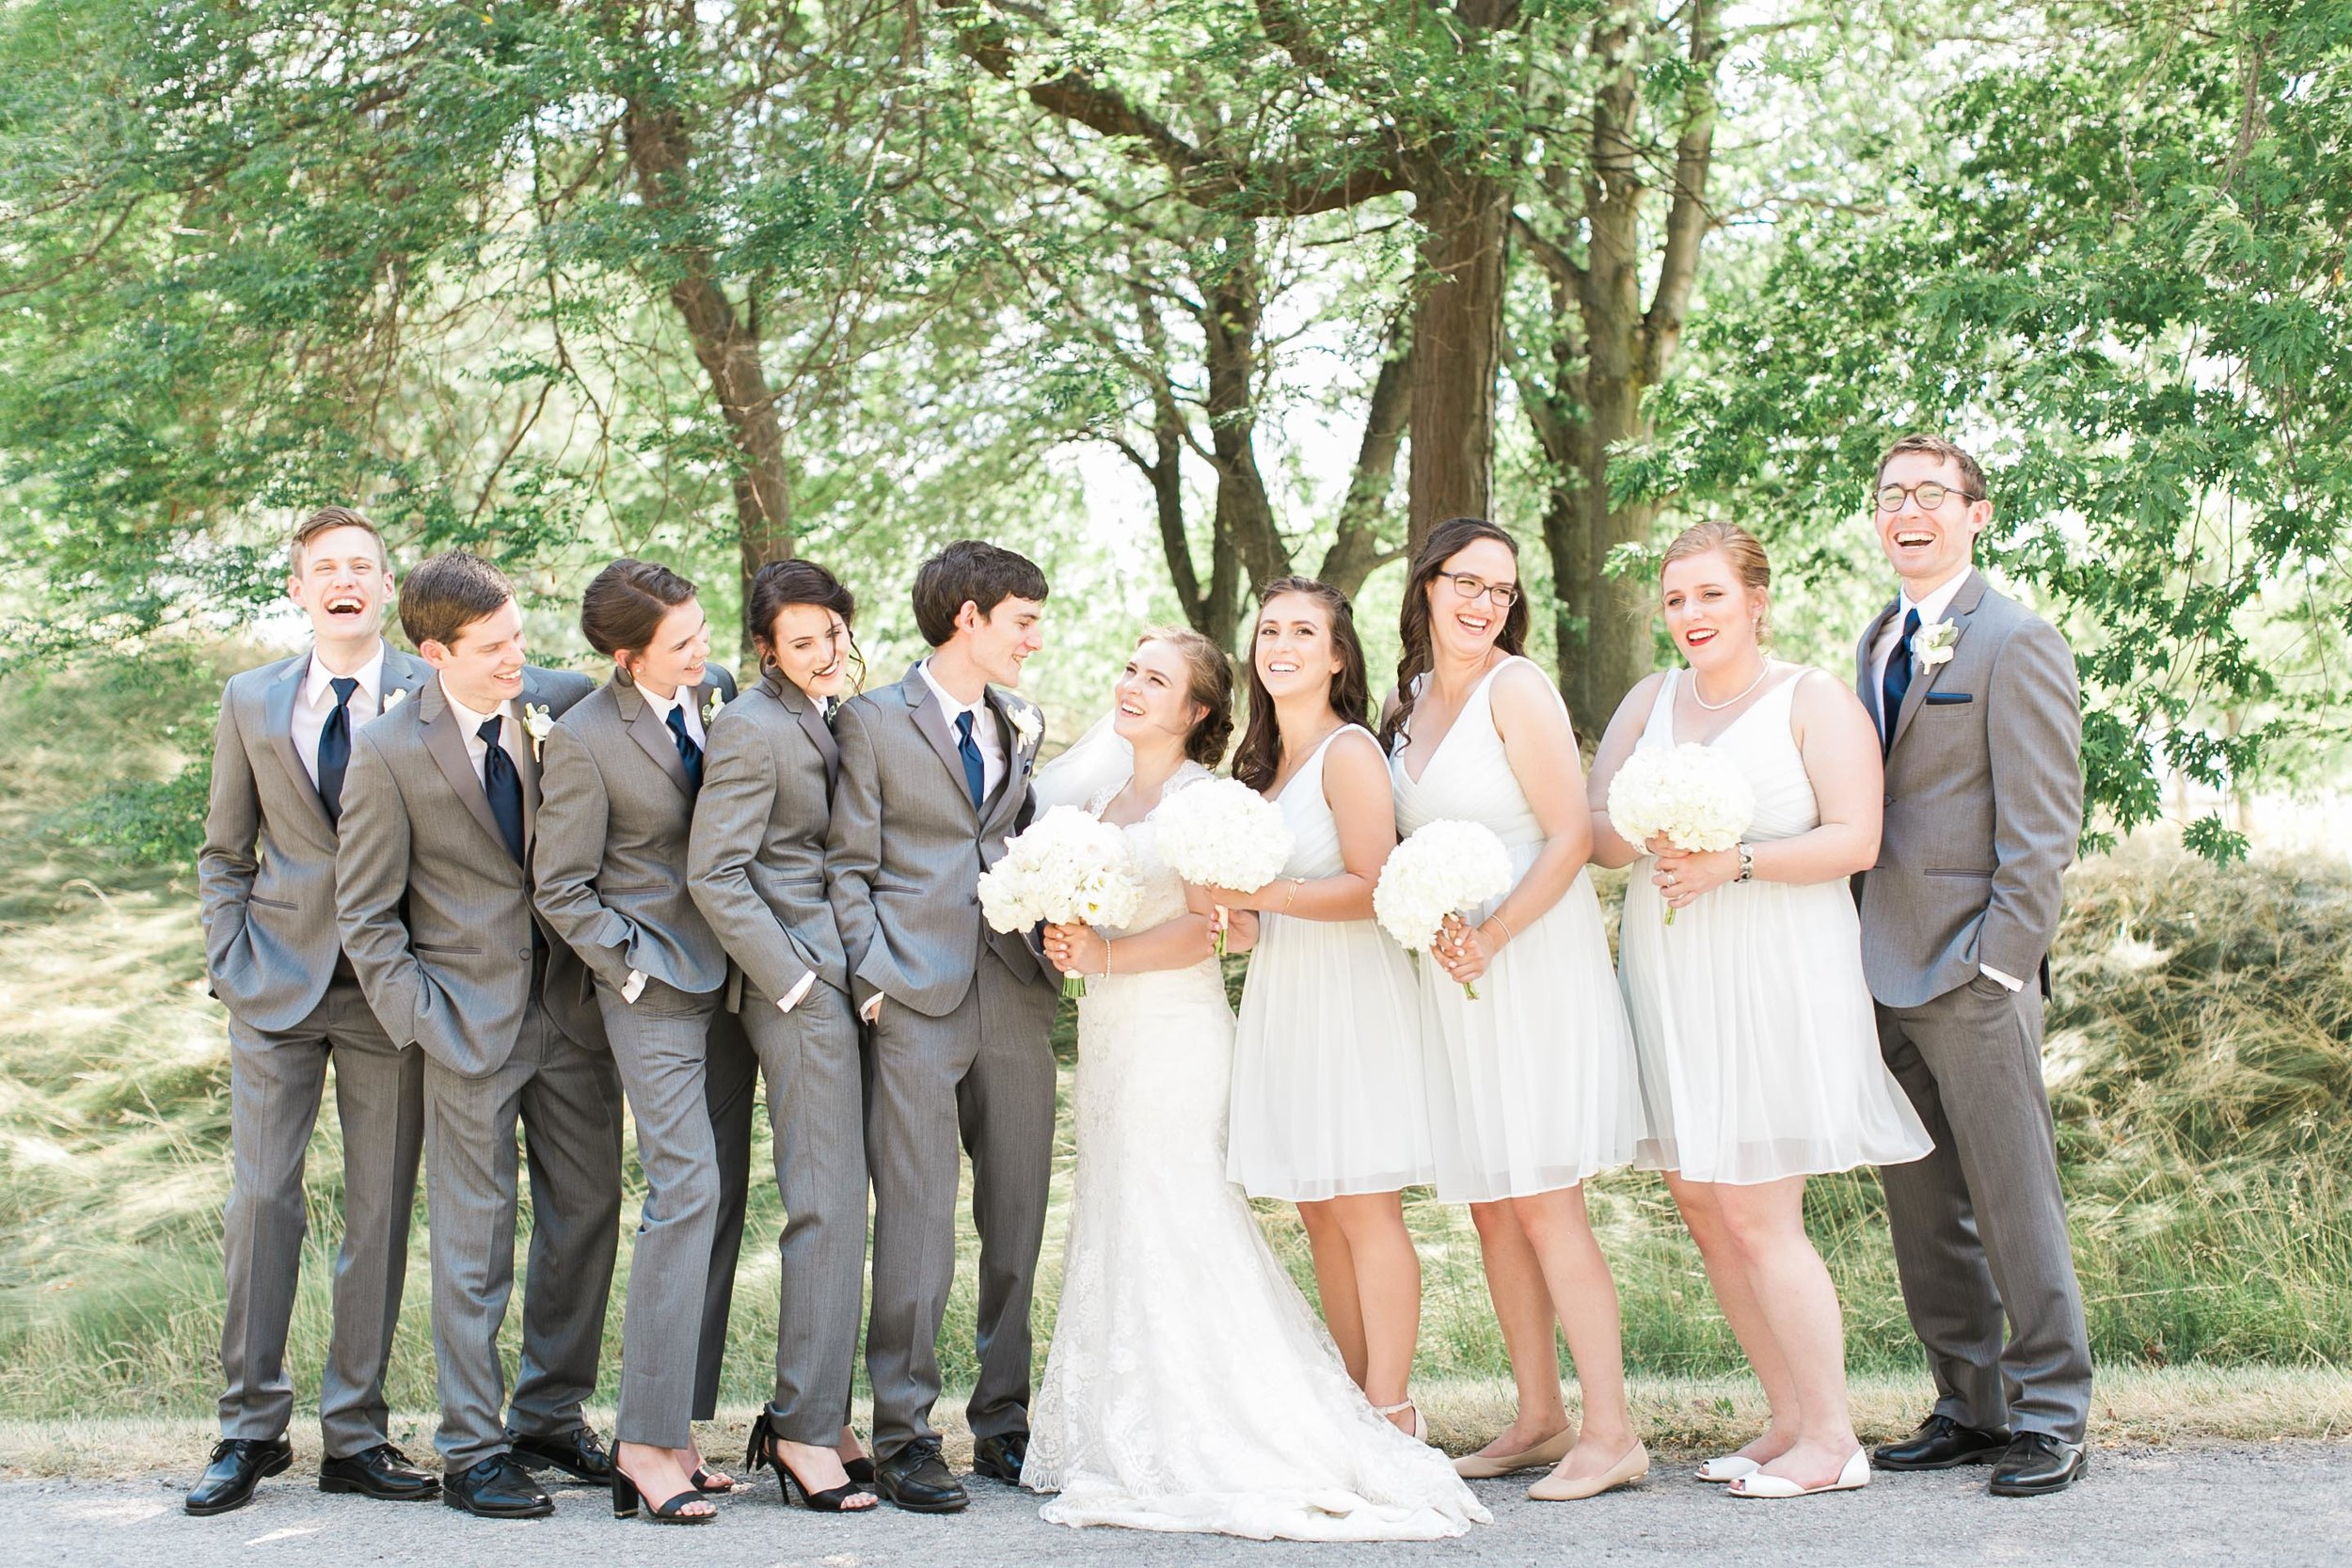 Bridal party photos at Fifty Point Conservation Area in Ontario